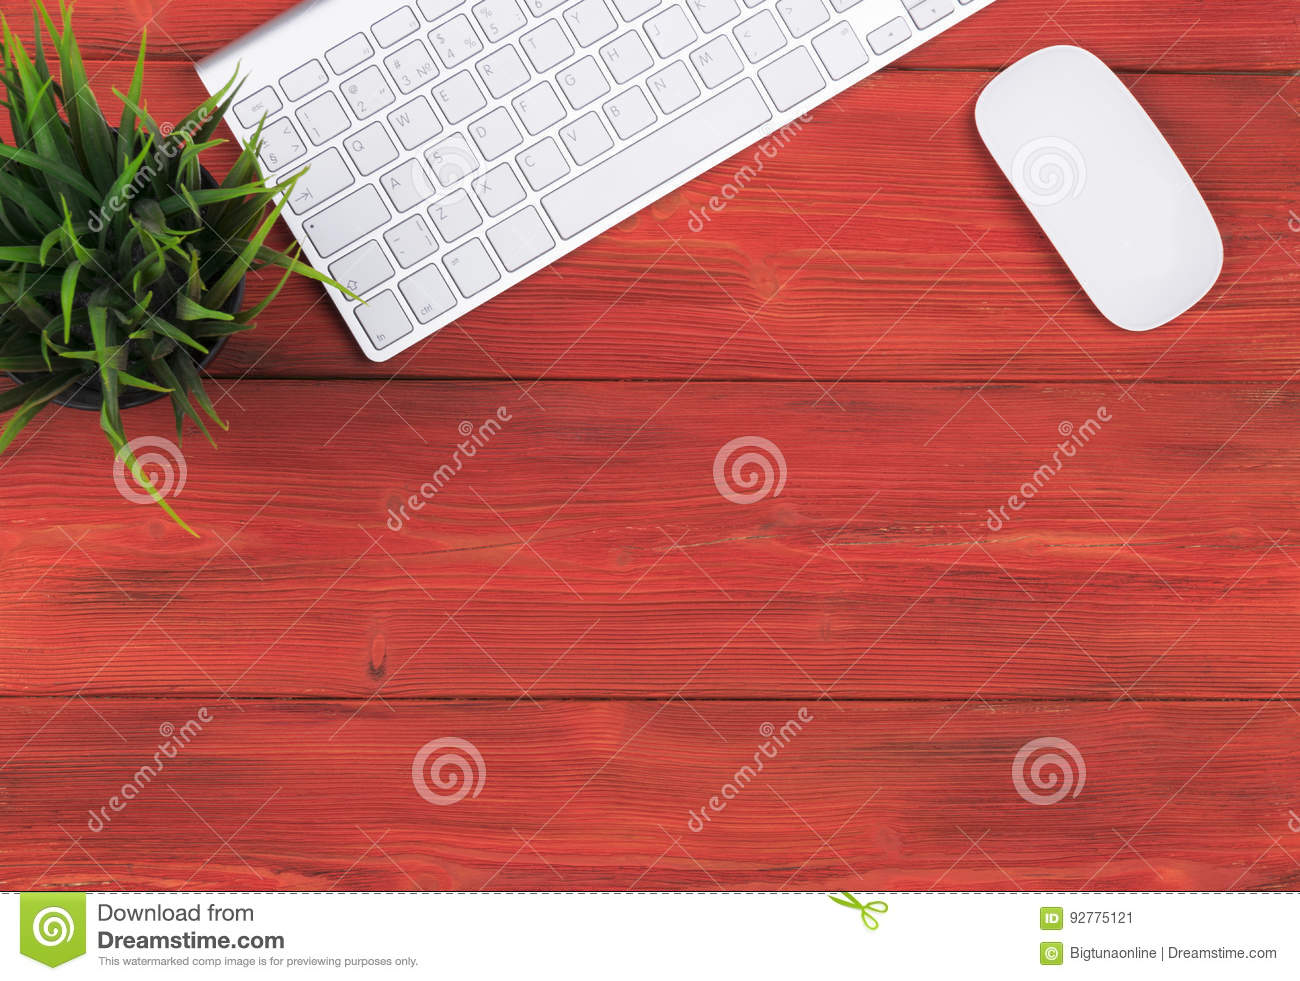 Office desk with copy space. Digital devices wireless keyboard and mouse on red wooden table, top view